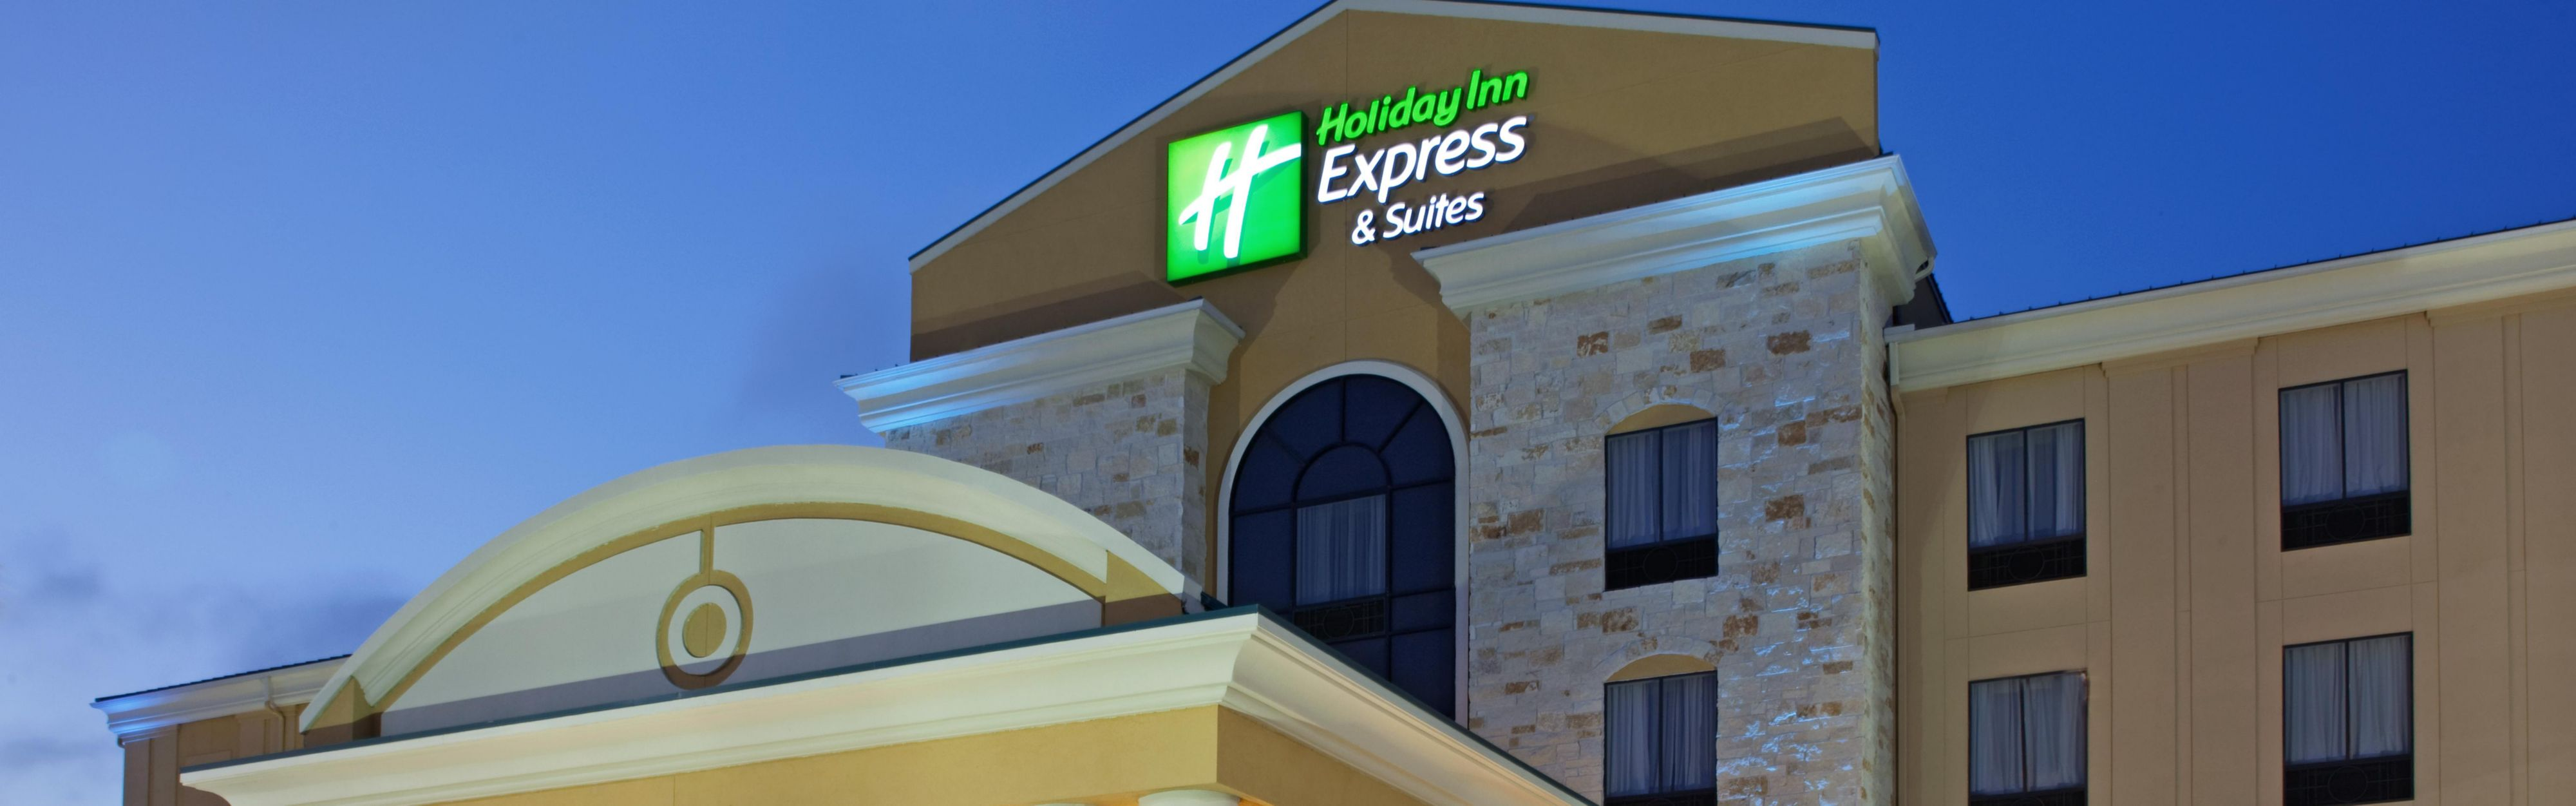 Holiday Inn Express & Suites Katy image 0